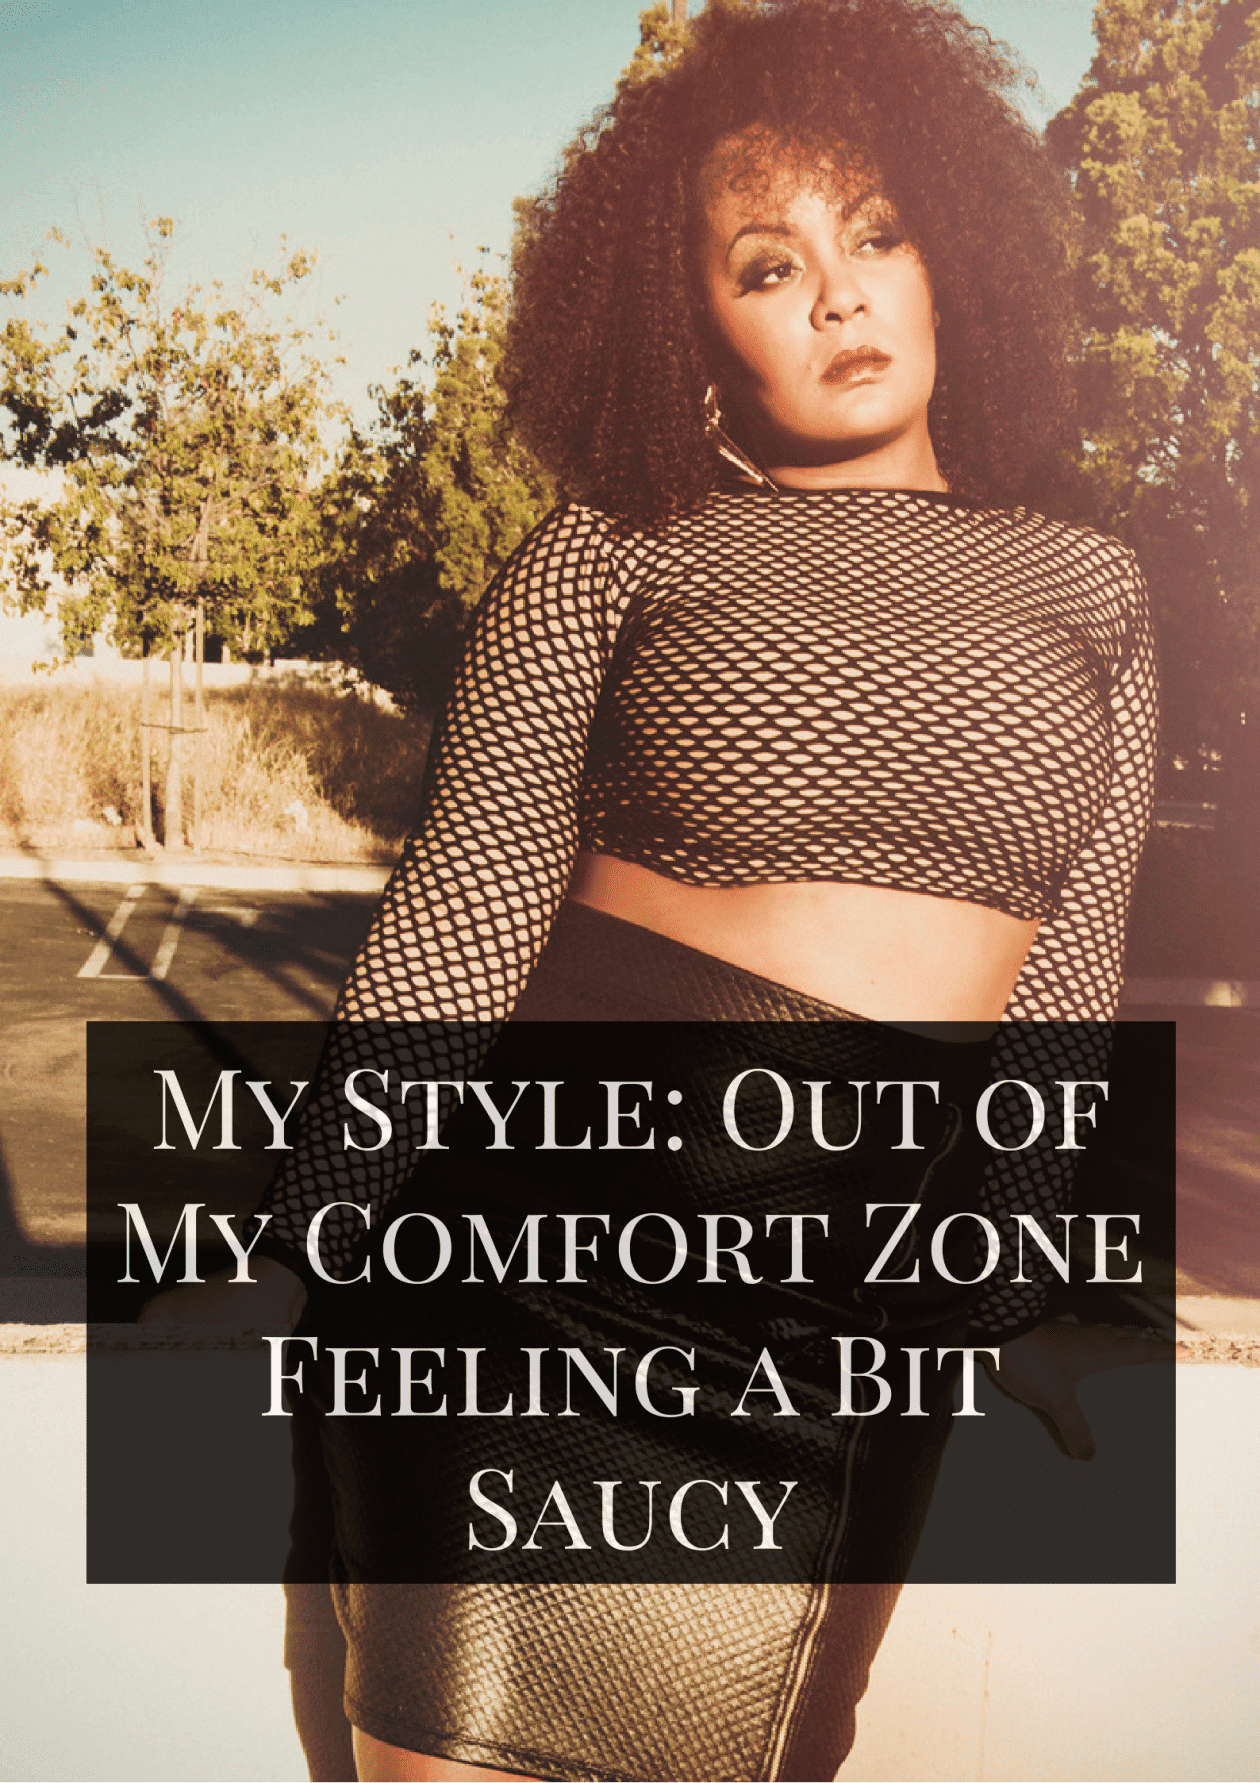 My Style: Out of My Comfort Zone Feeling a Bit Saucy